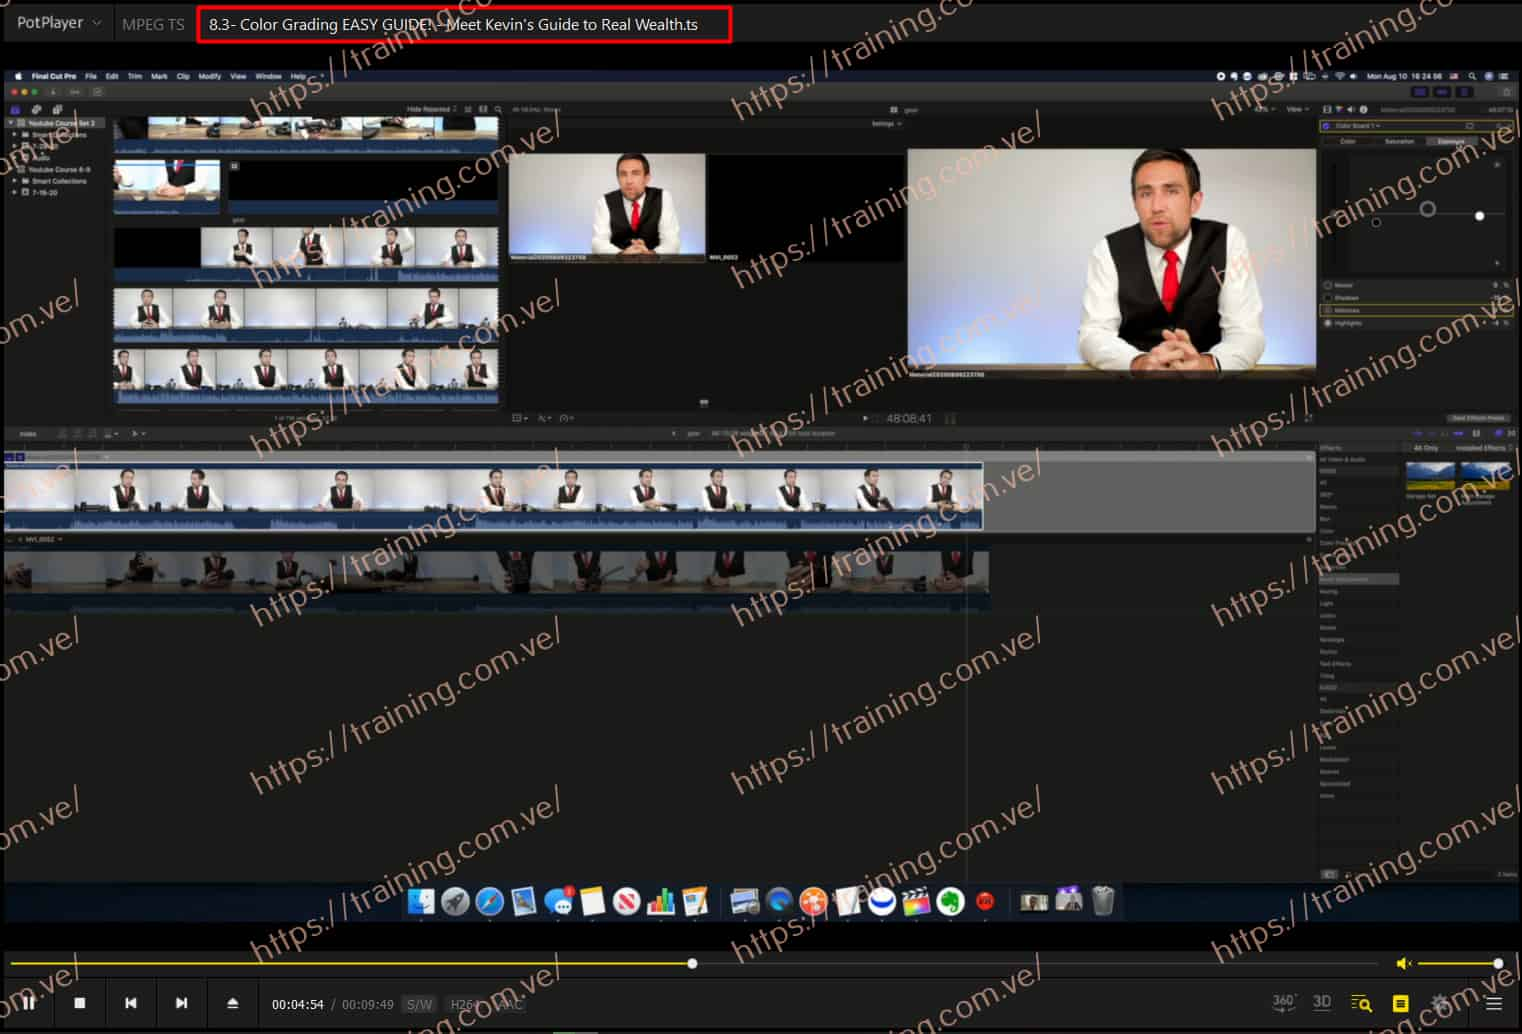 Build Wealth Making Youtube Videos by Kevin Sale 1